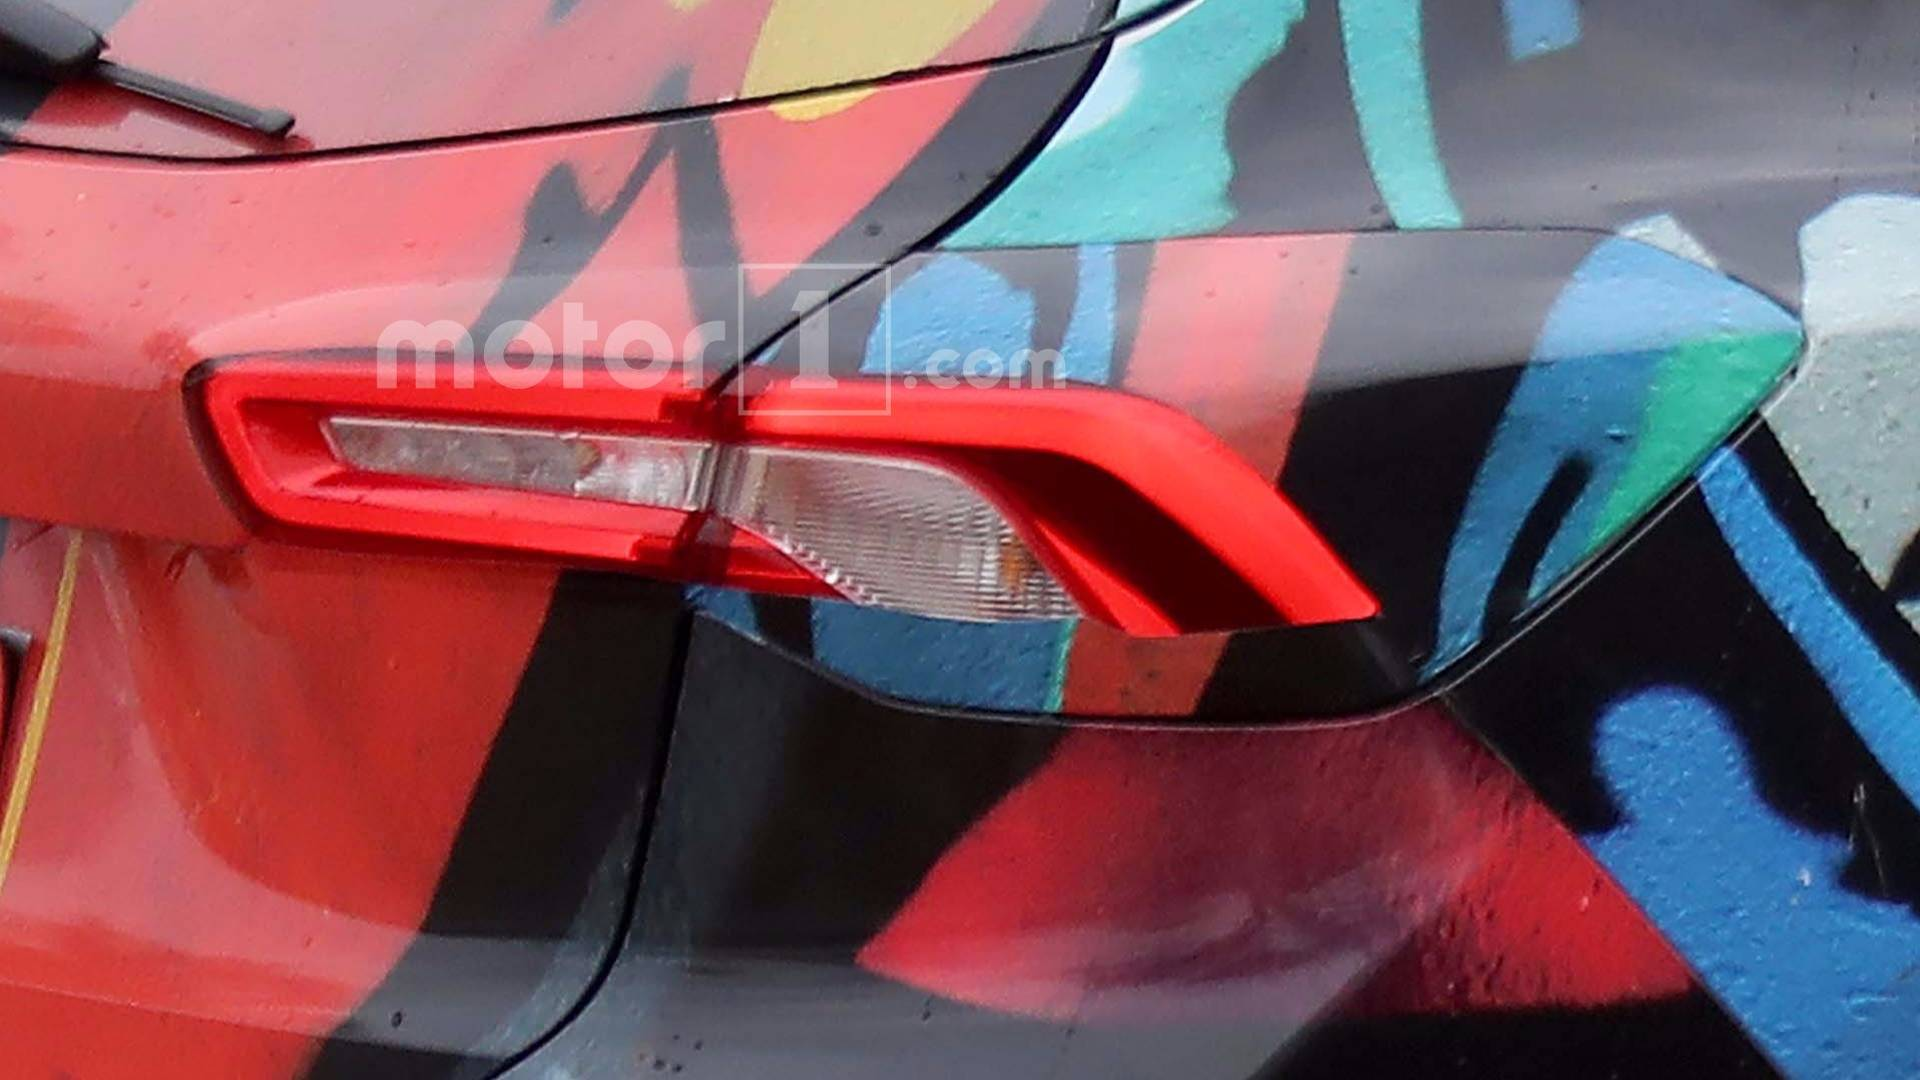 2019-ford-​focus-spy-​photo